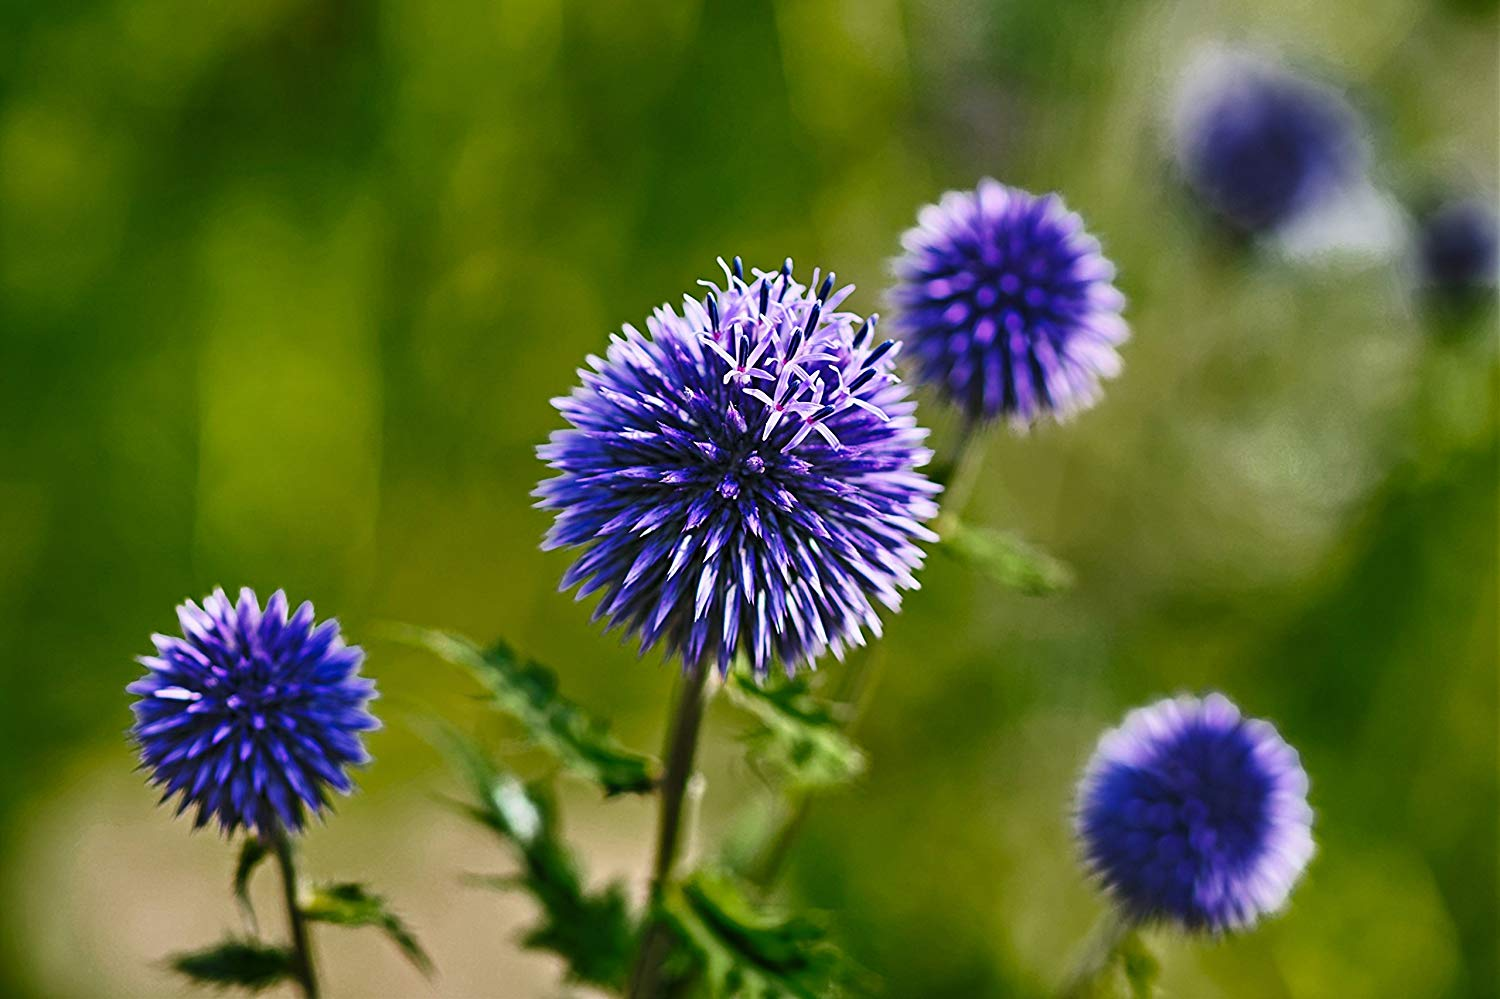 Buy Natural Blue Flower Paper Print Exotic Professional Photography Print Nature Wallpaper Professional Prints Beautiful Flower Photography In Cheap Price On Alibaba Com